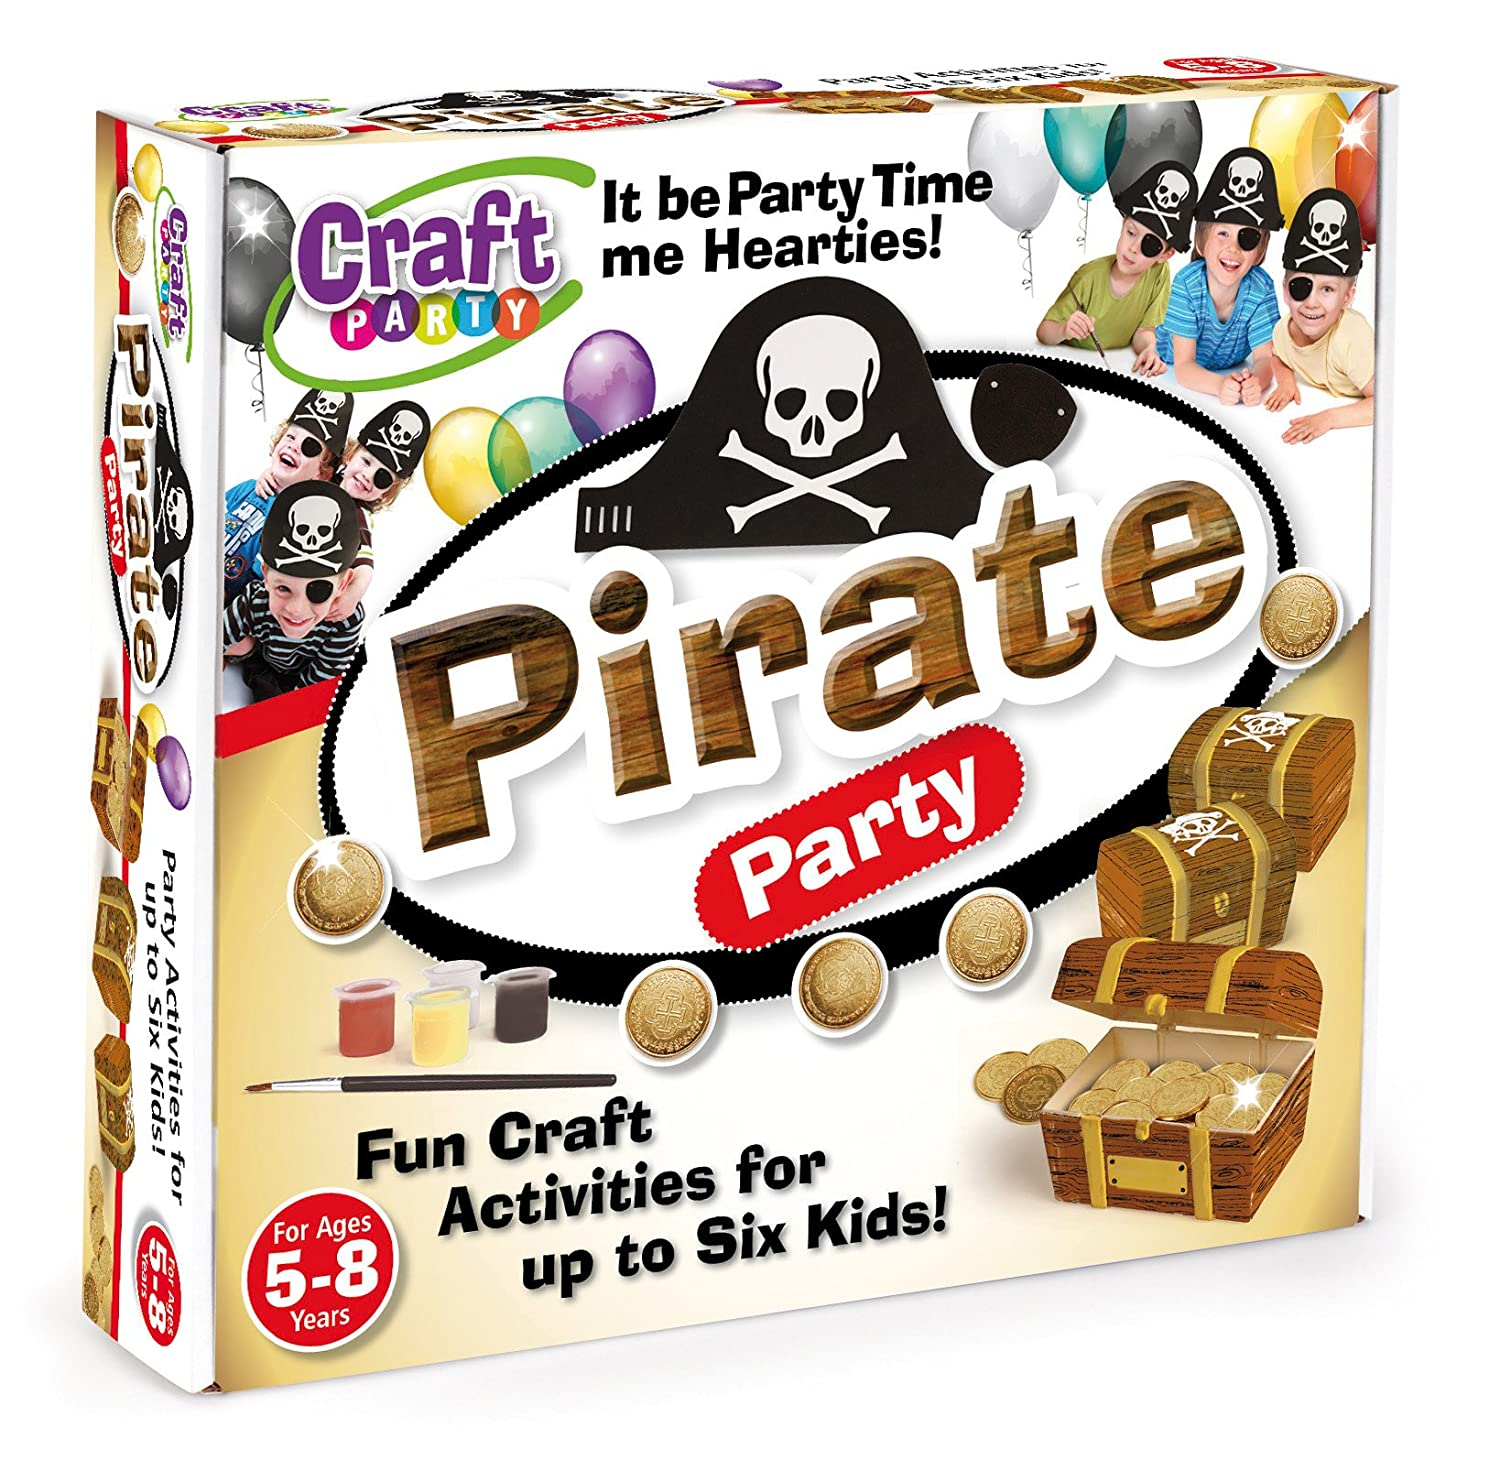 Craft Party Pirate Party